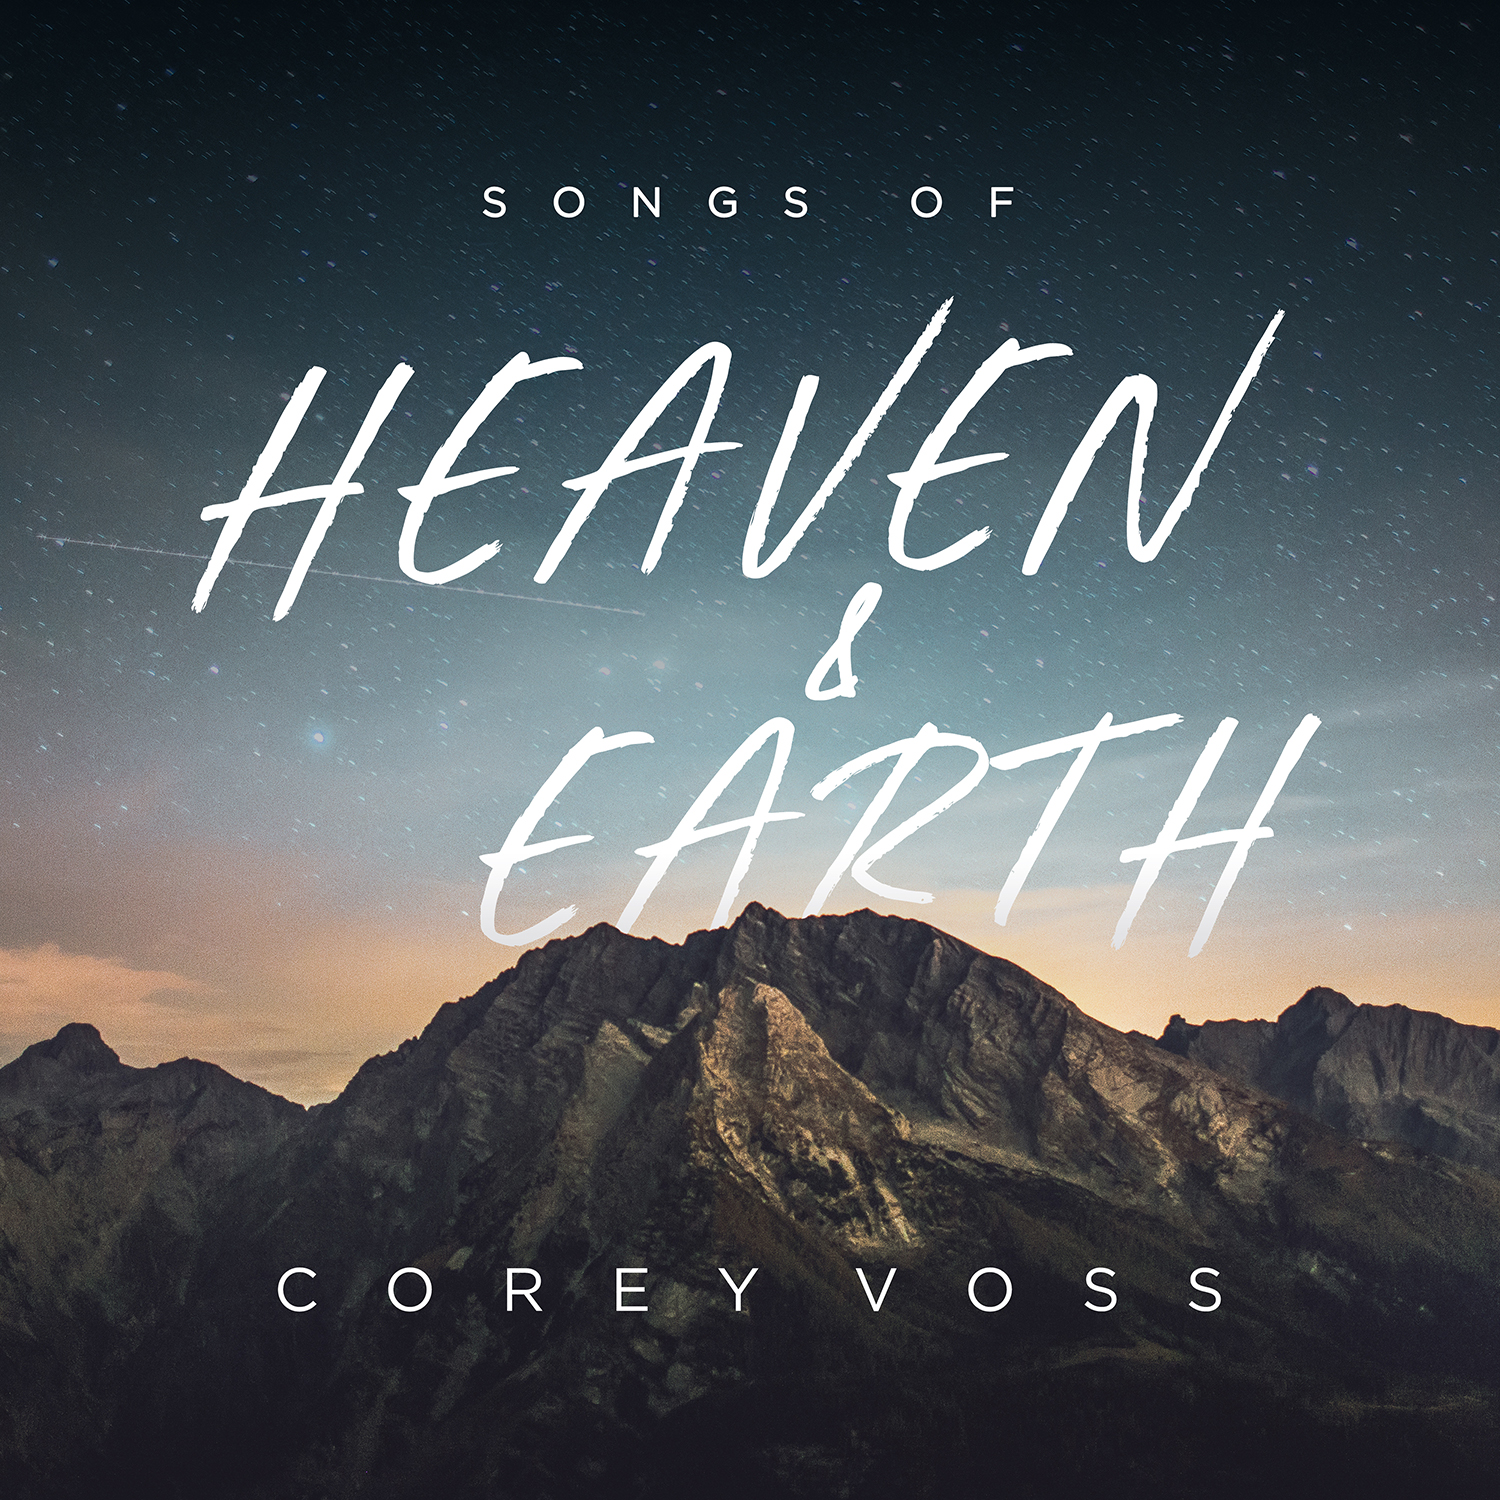 Corey Voss_Songs Of Heaven and Earth_ALBUM Cover.jpg